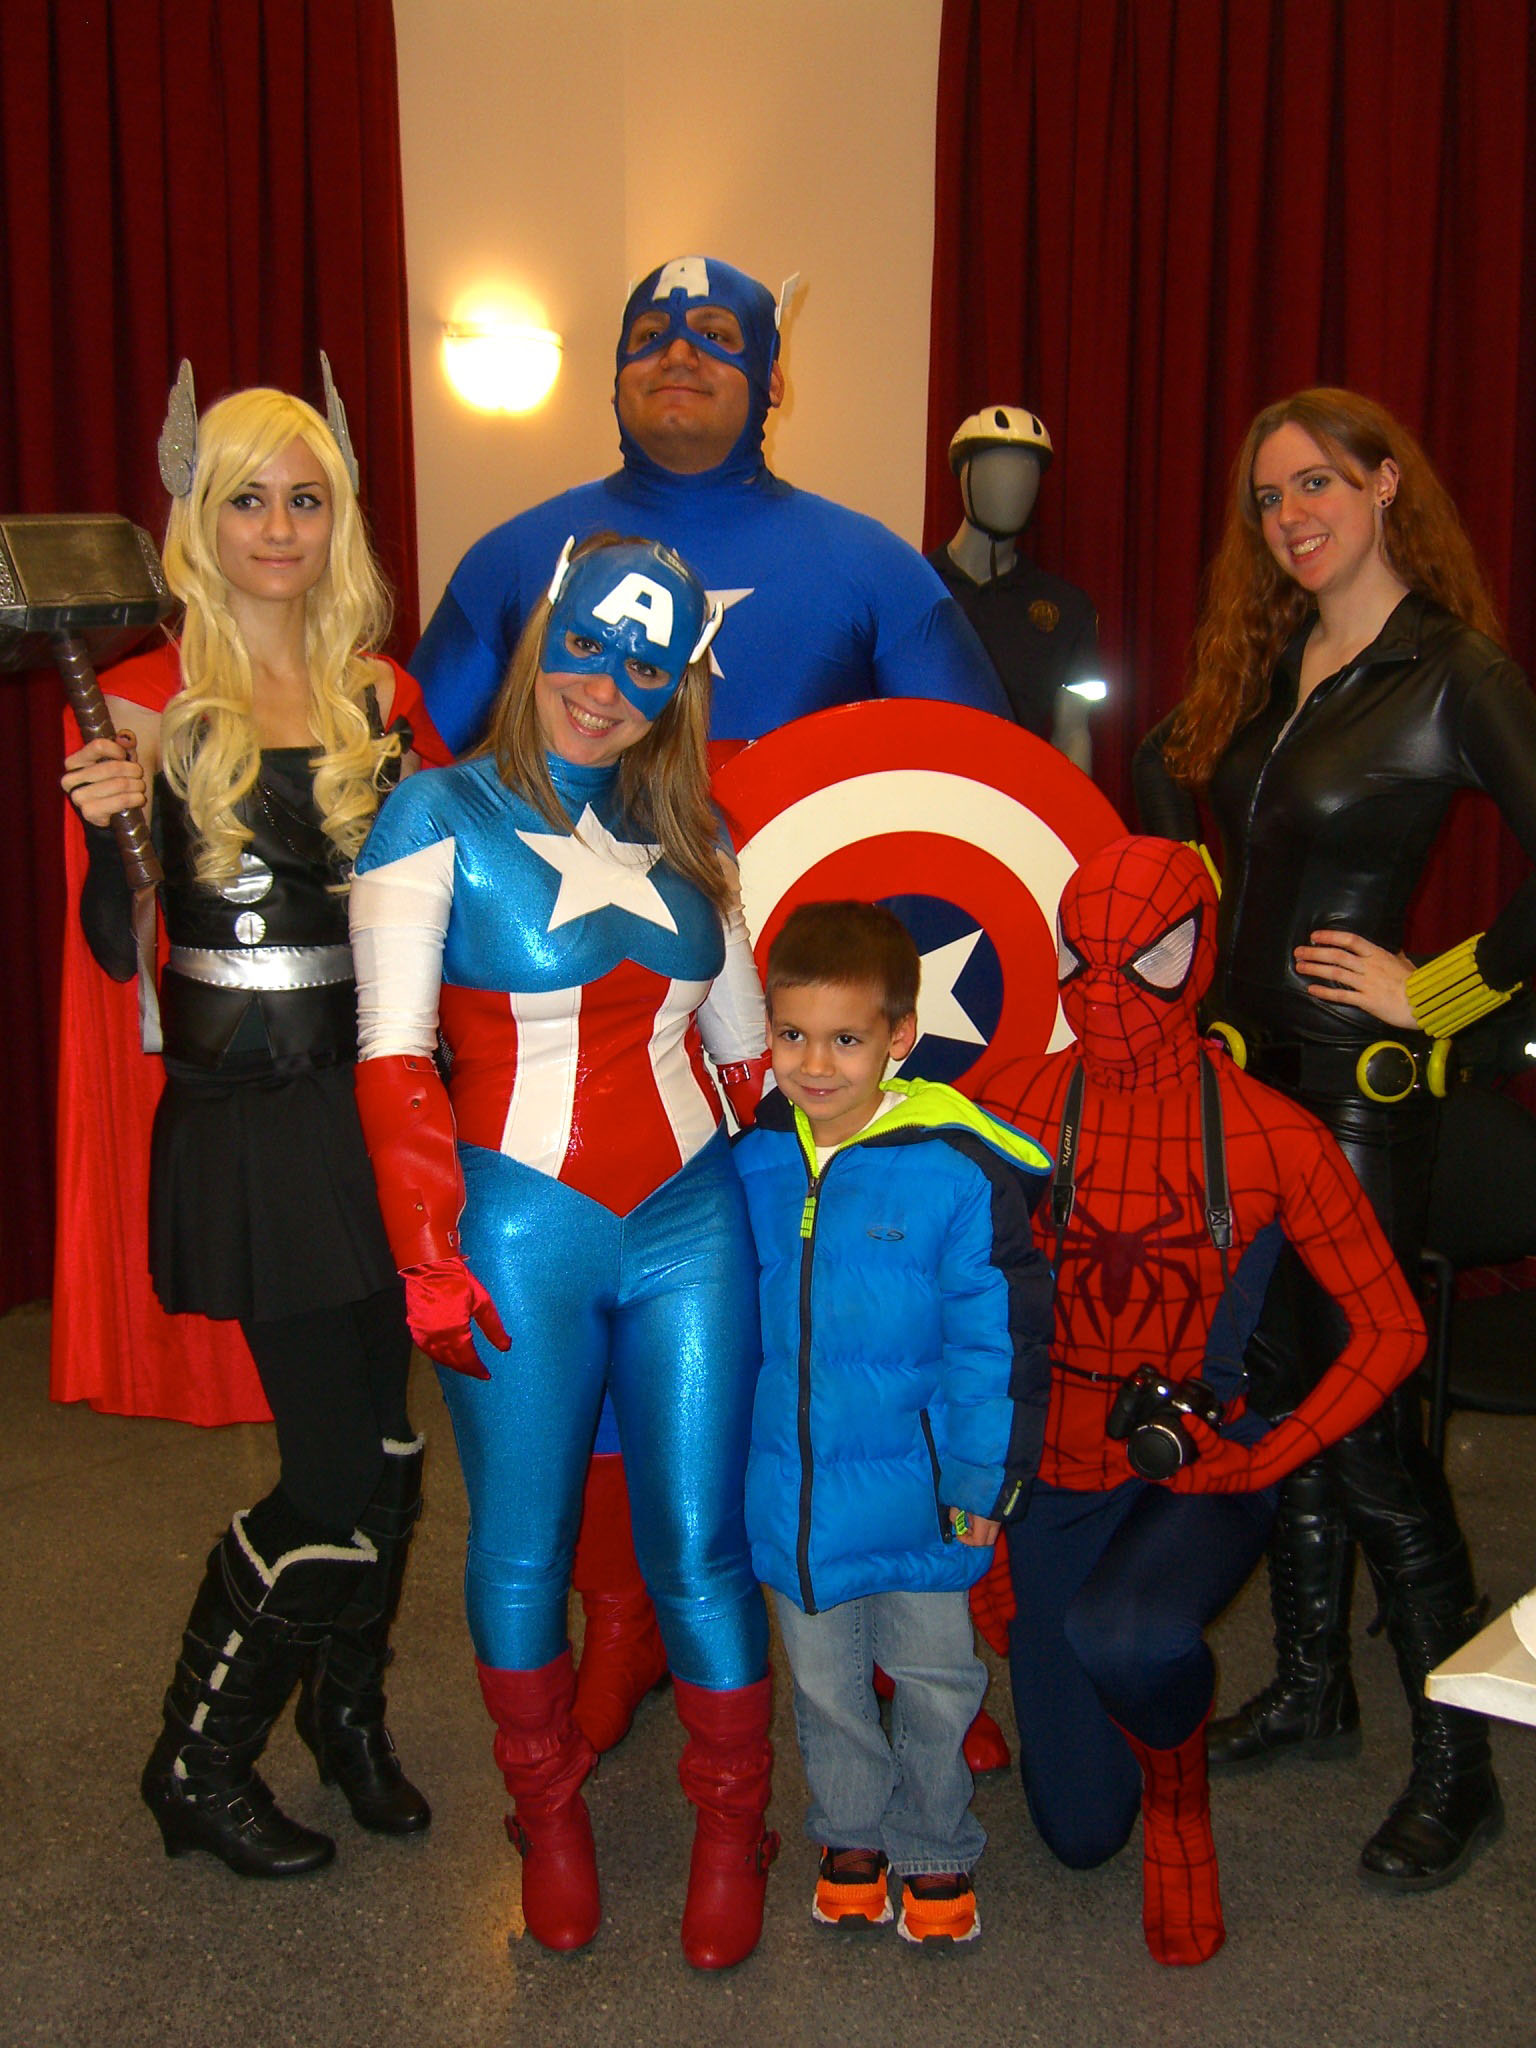 2.3.13CosplayersByLuigiNovi10.jpg English: Superhero cosplayers on Day 2 of the first annual Artists Assemble! comics festival at the William